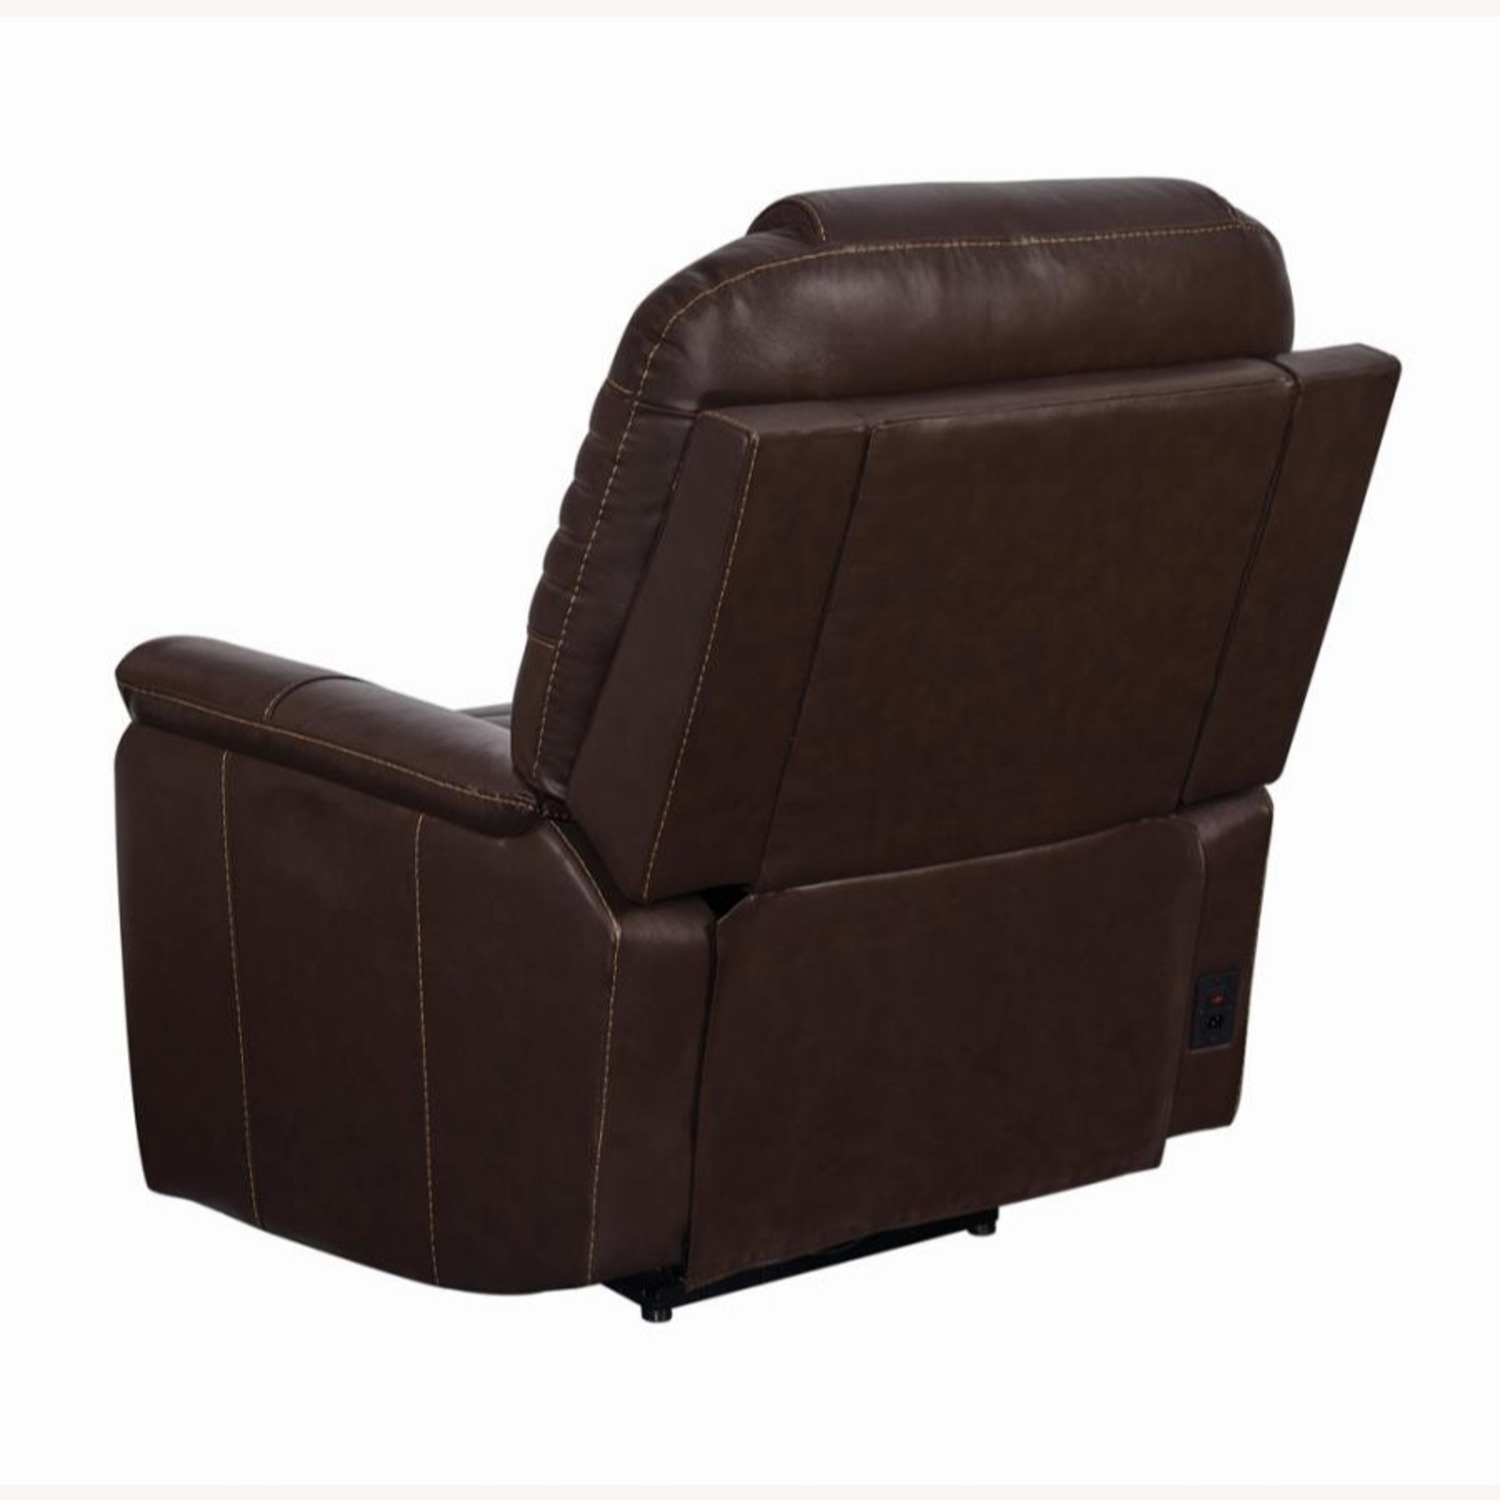 Power Recliner In Cozy Brown Leather Upholstery - image-4